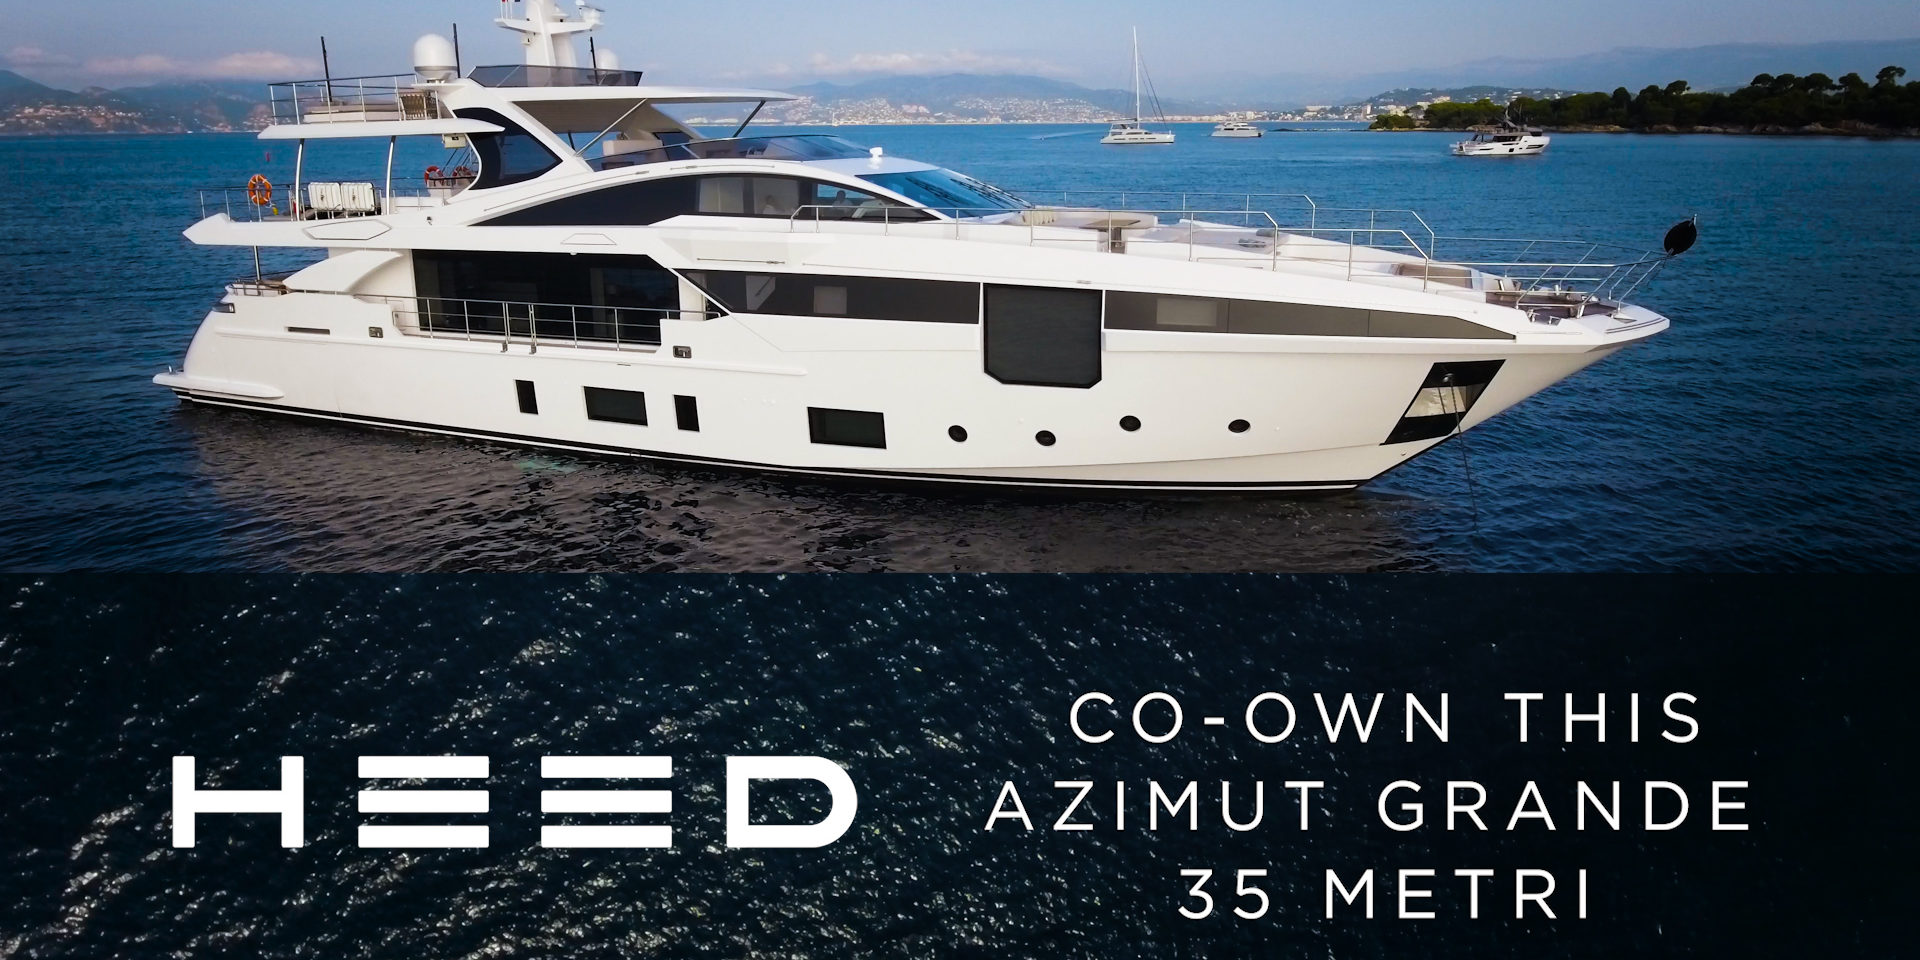 AZIMUT GRANDE 35 'HEED' – SHORT DOCUMENTARY